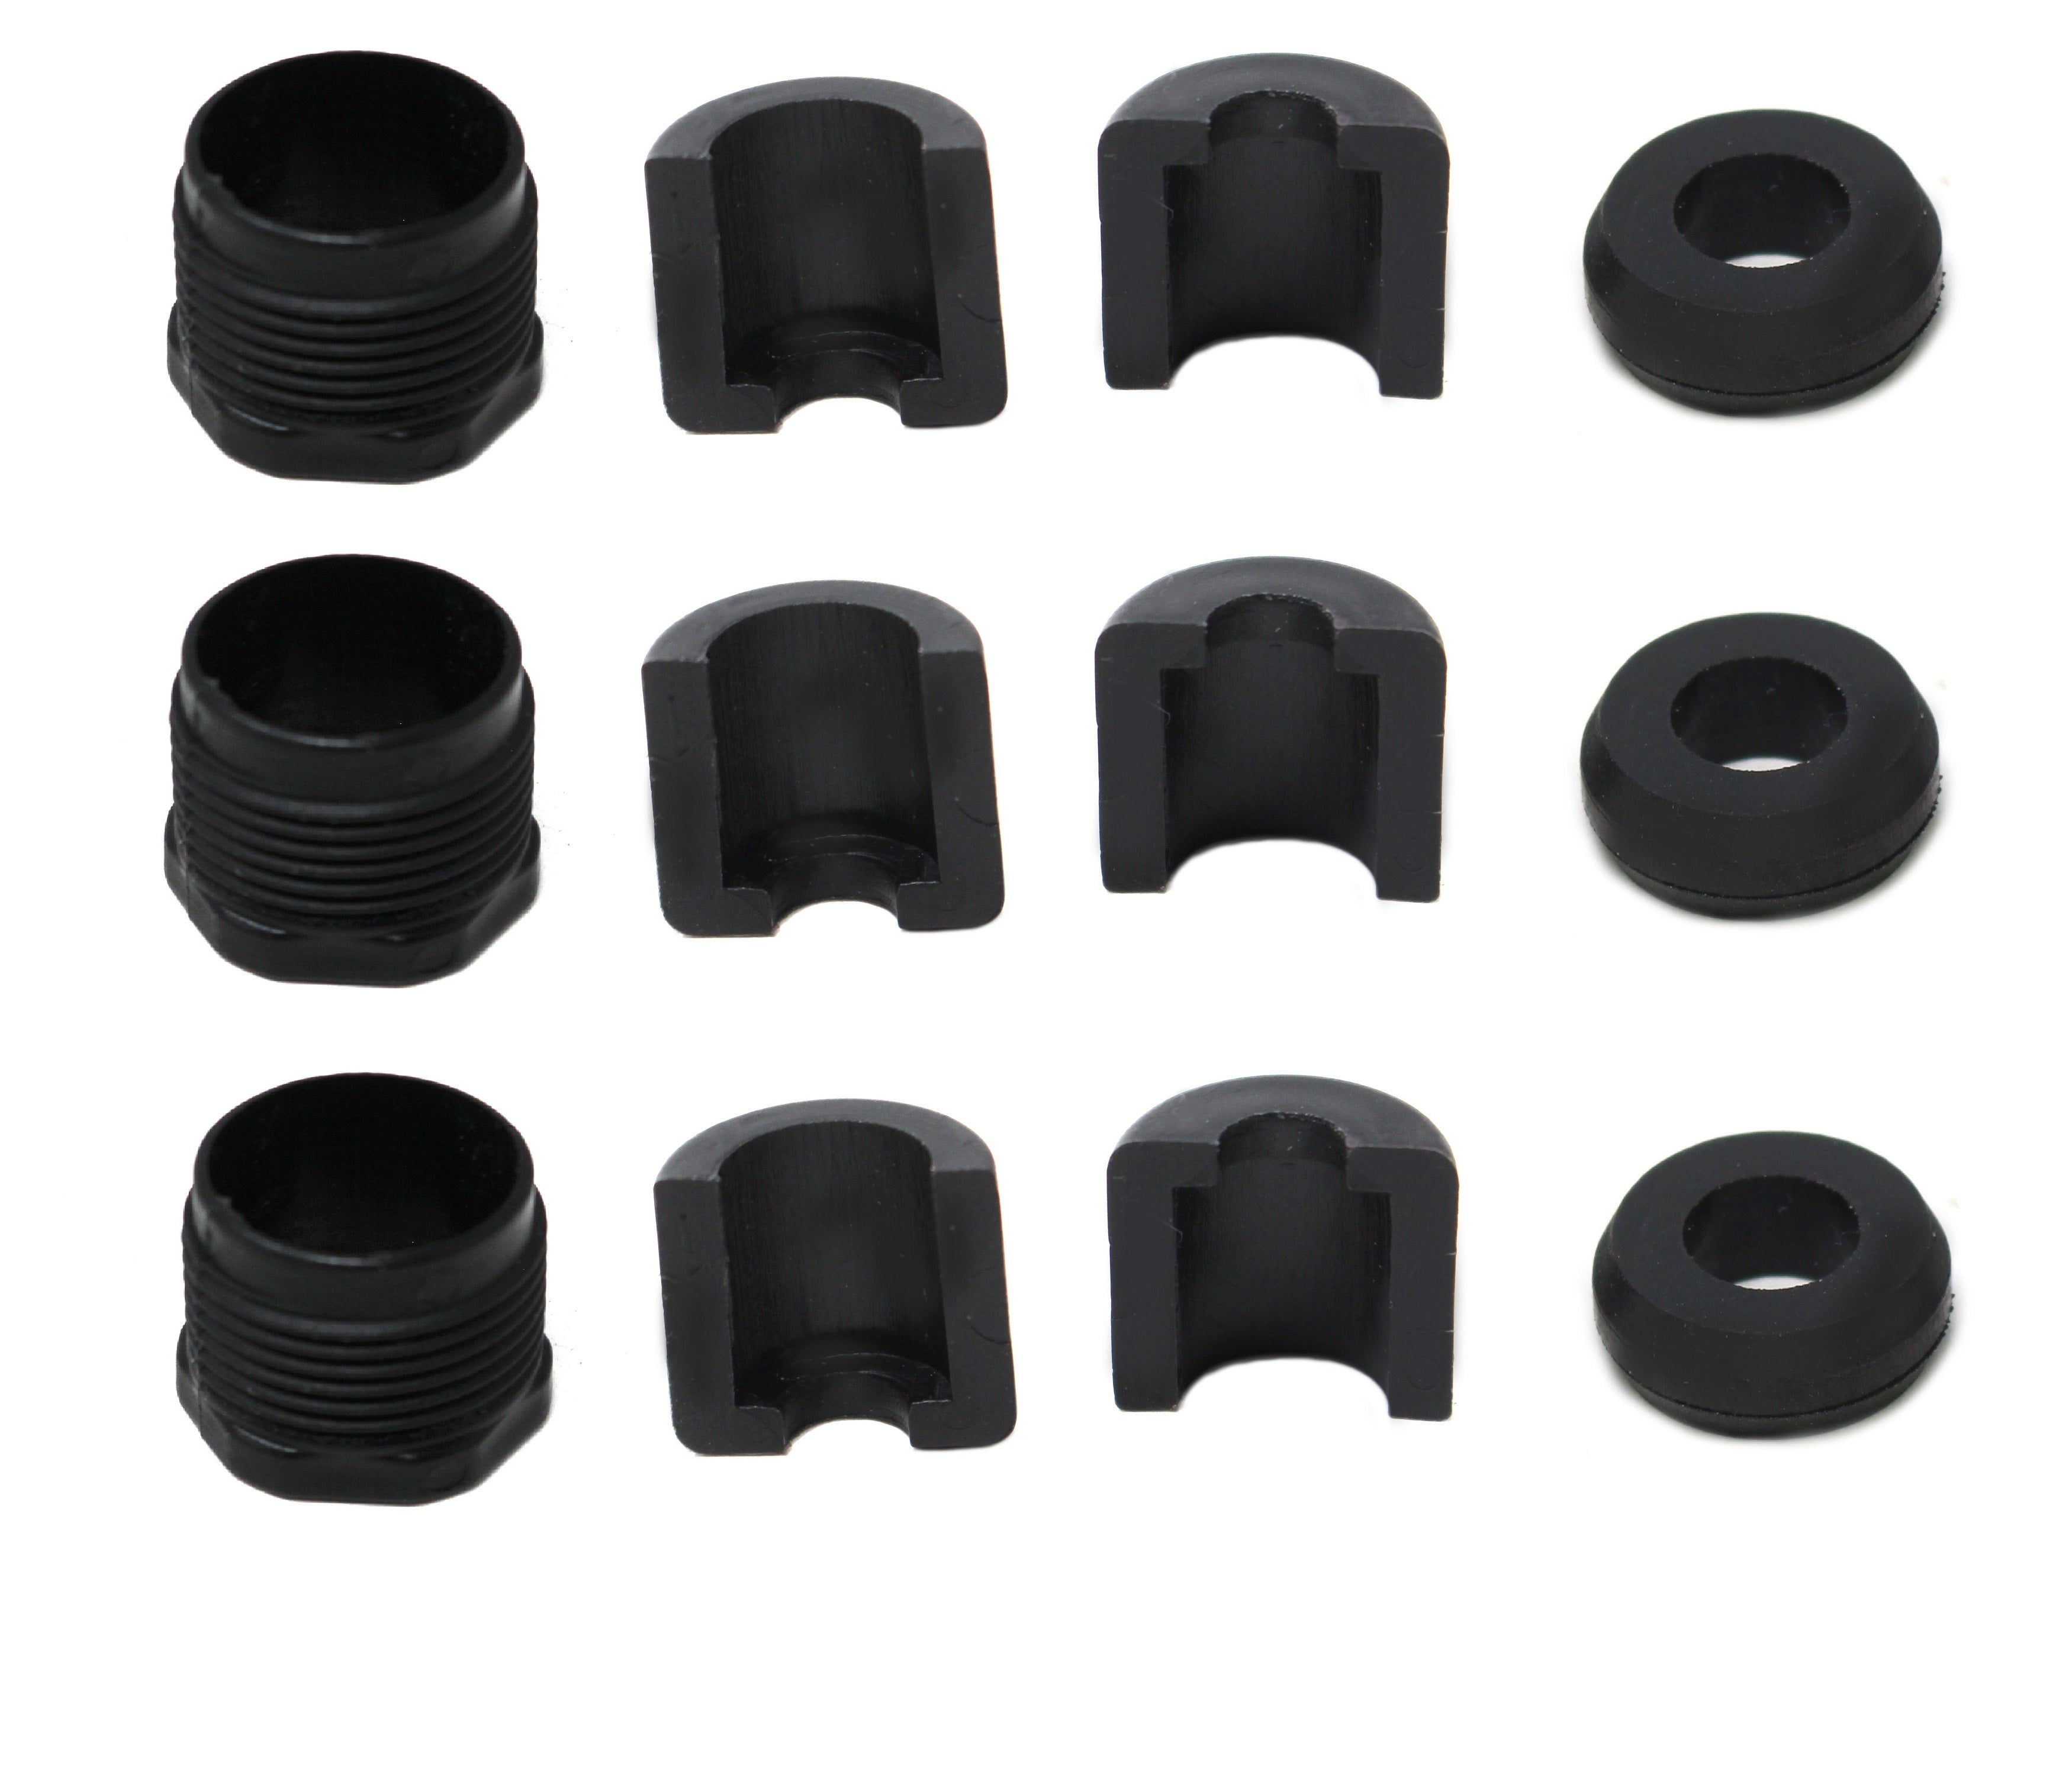 JSP Manufacturing Aluminum Reverse Cable Lock Nut Kit Compatible with SeaDoo 277001729 277000055 211100009